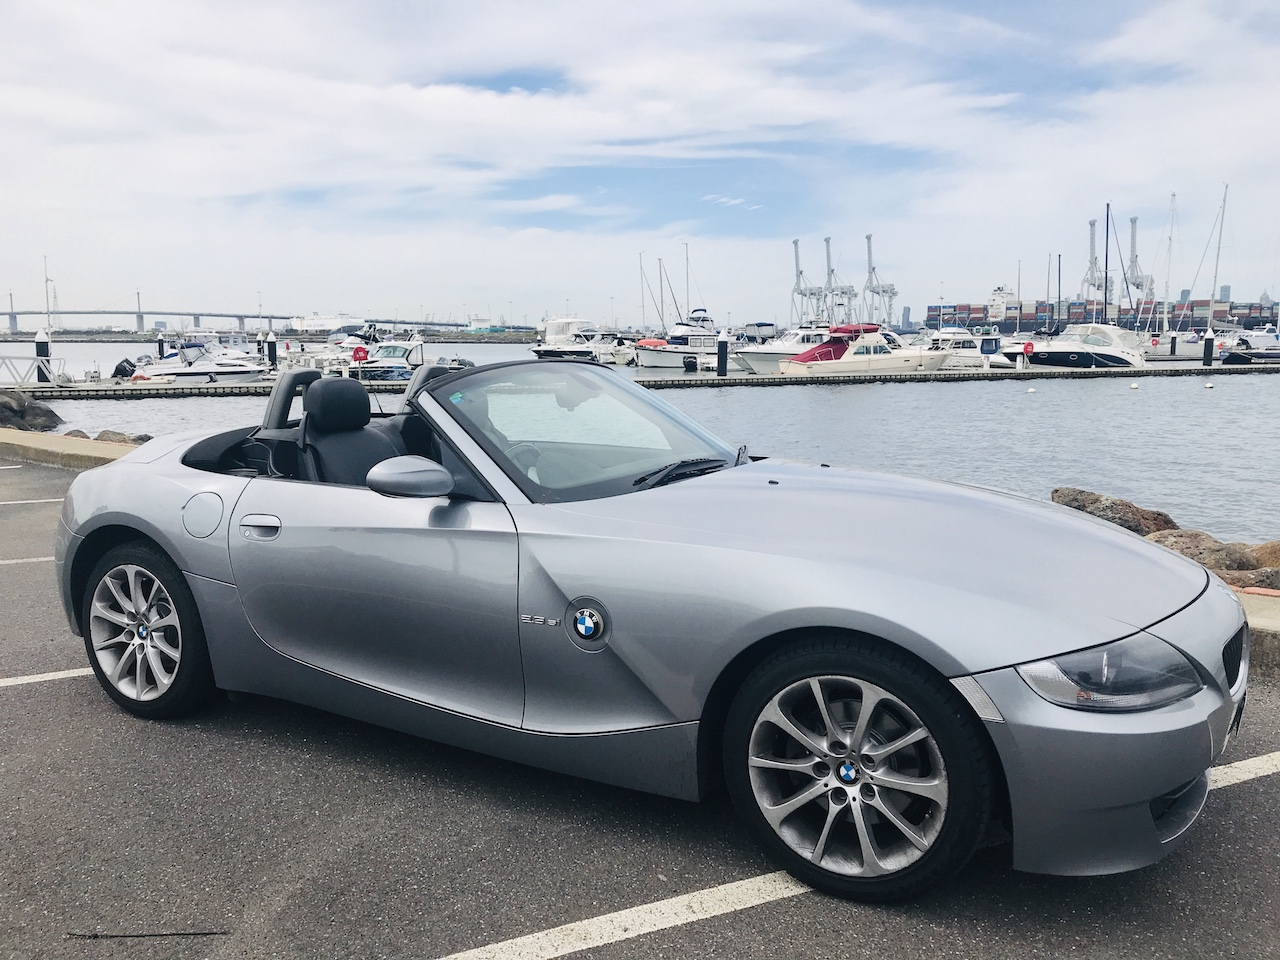 Picture of Leanne's 2006 BMW Z4